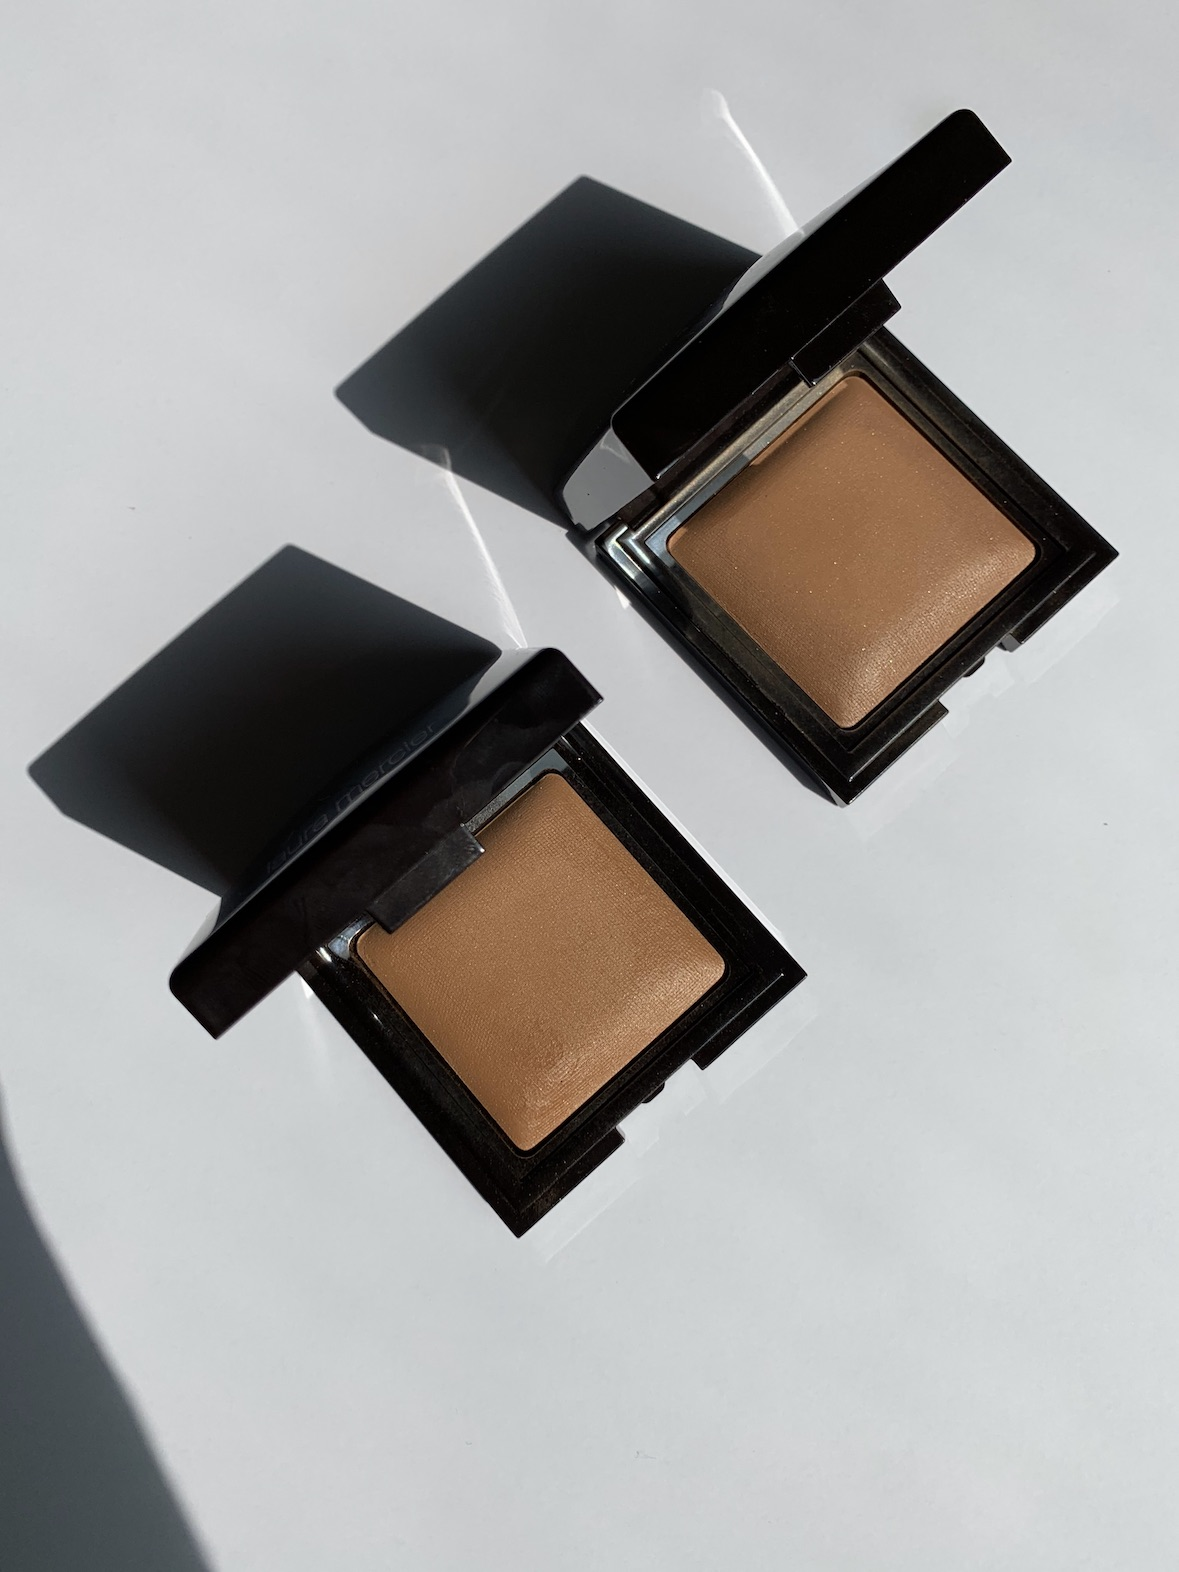 Laura Mercier Candleglow Sheer Perfecting Powder Shades 4 and 5